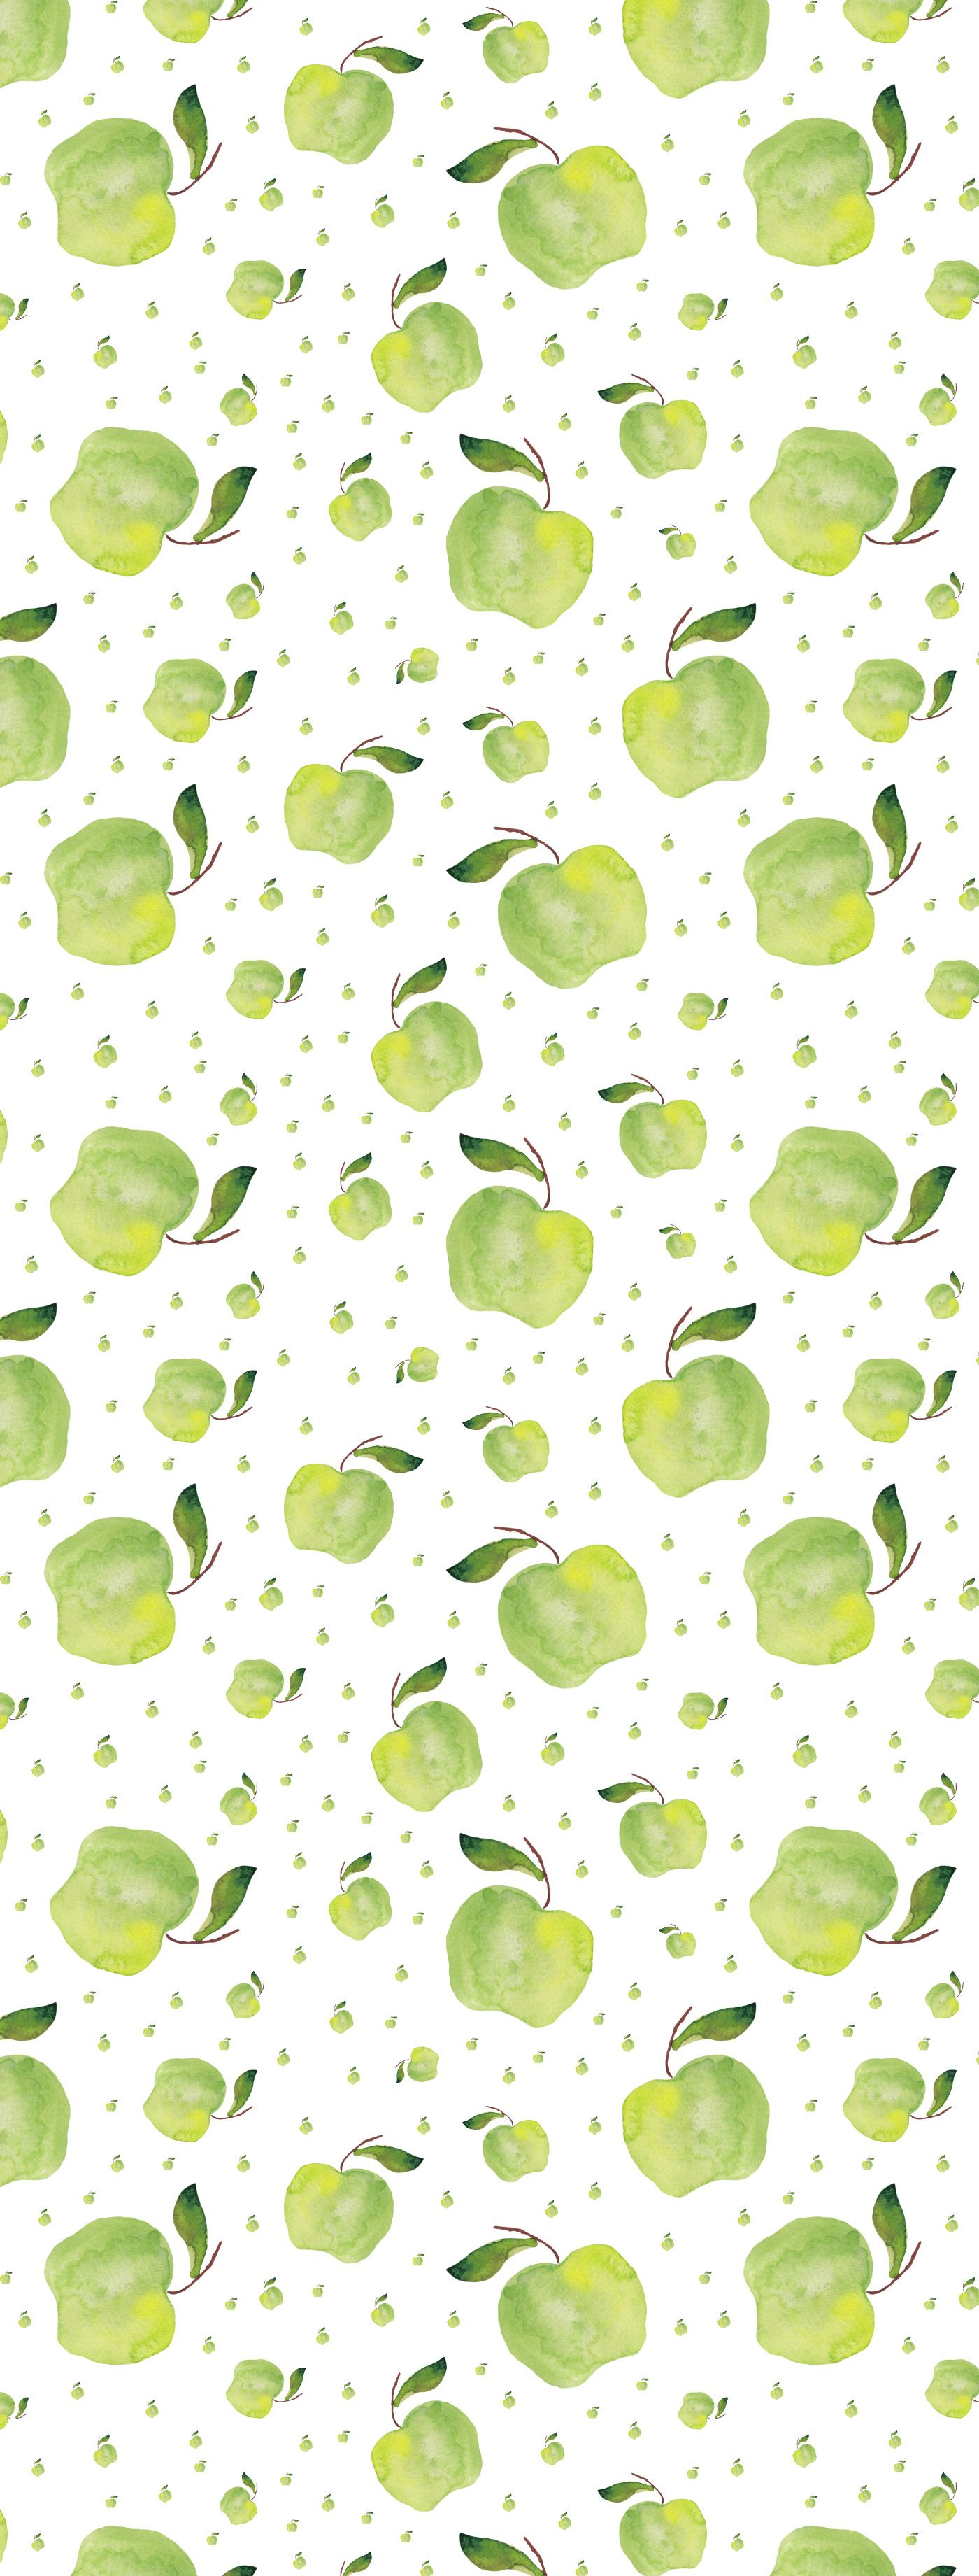 Photo of Watercolor Fruit Patterns